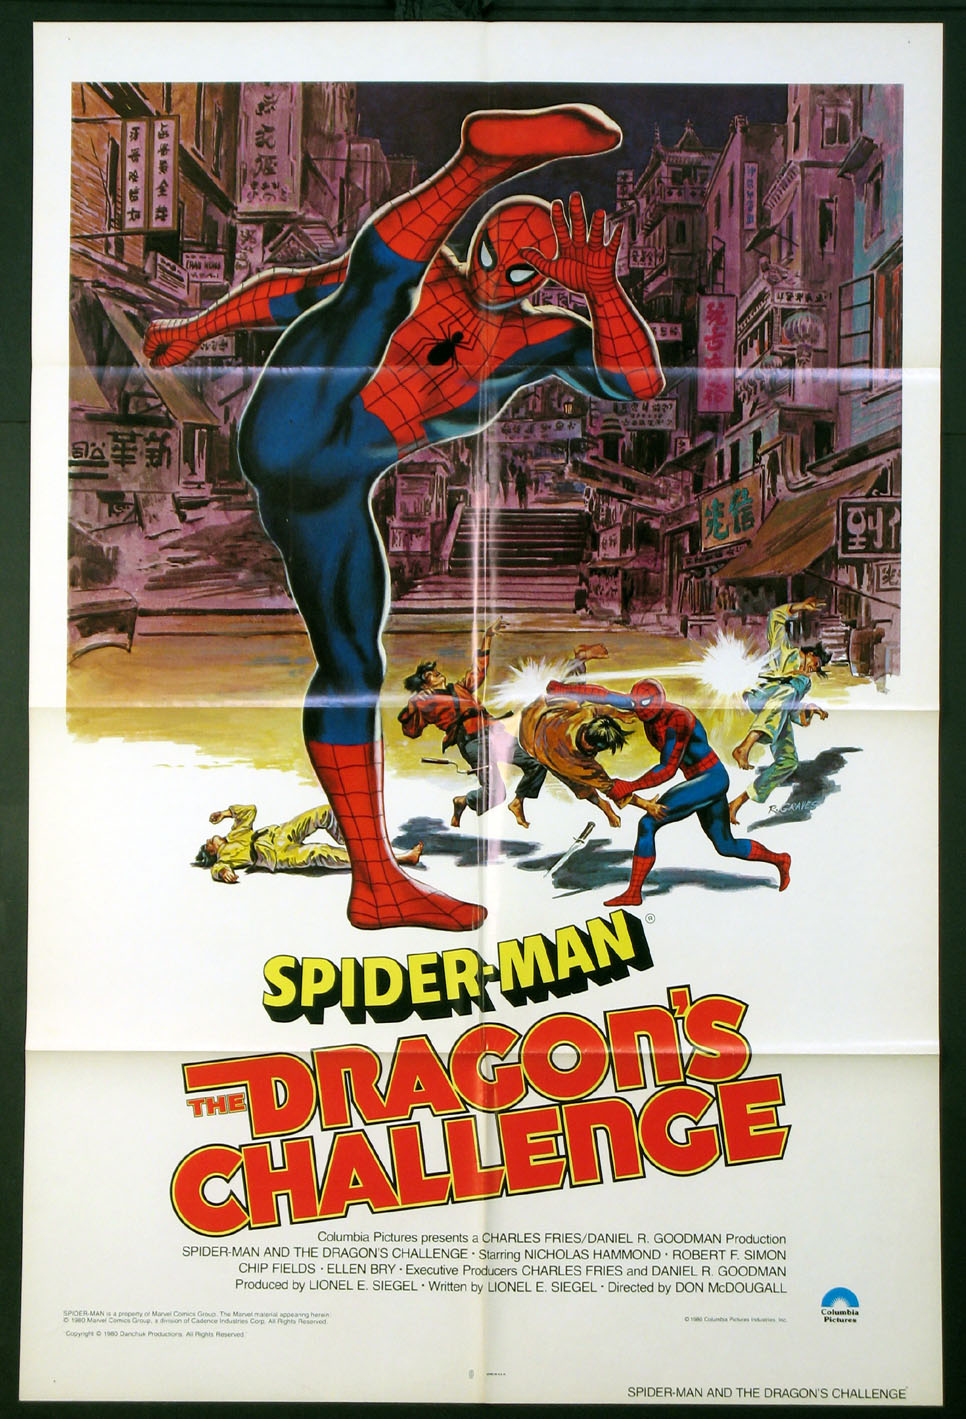 SPIDER-MAN: THE DRAGON'S CHALLENGE (Spiderman) @ FilmPosters.com